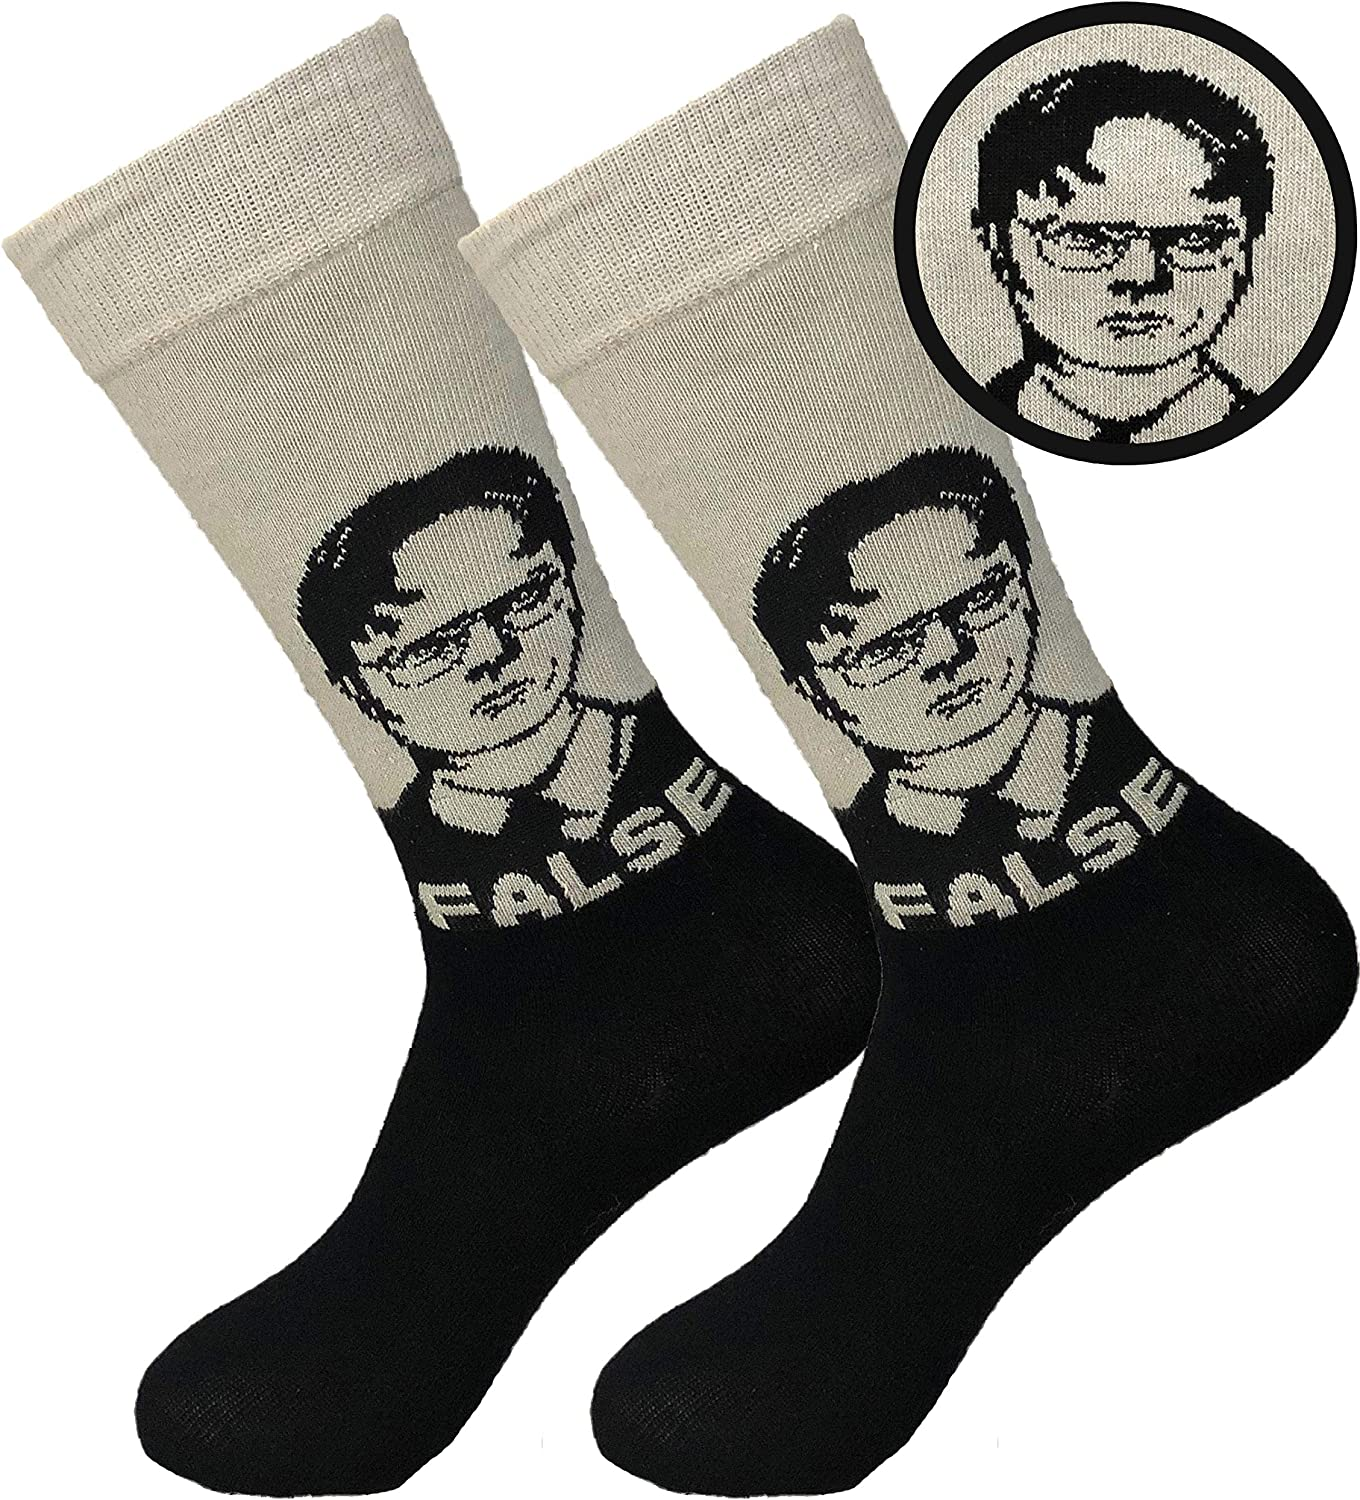 Balanced Co. Dwight Schrute Dress Socks Rainn Wilson Funny Socks Crazy Socks Casual Cotton Crew Socks